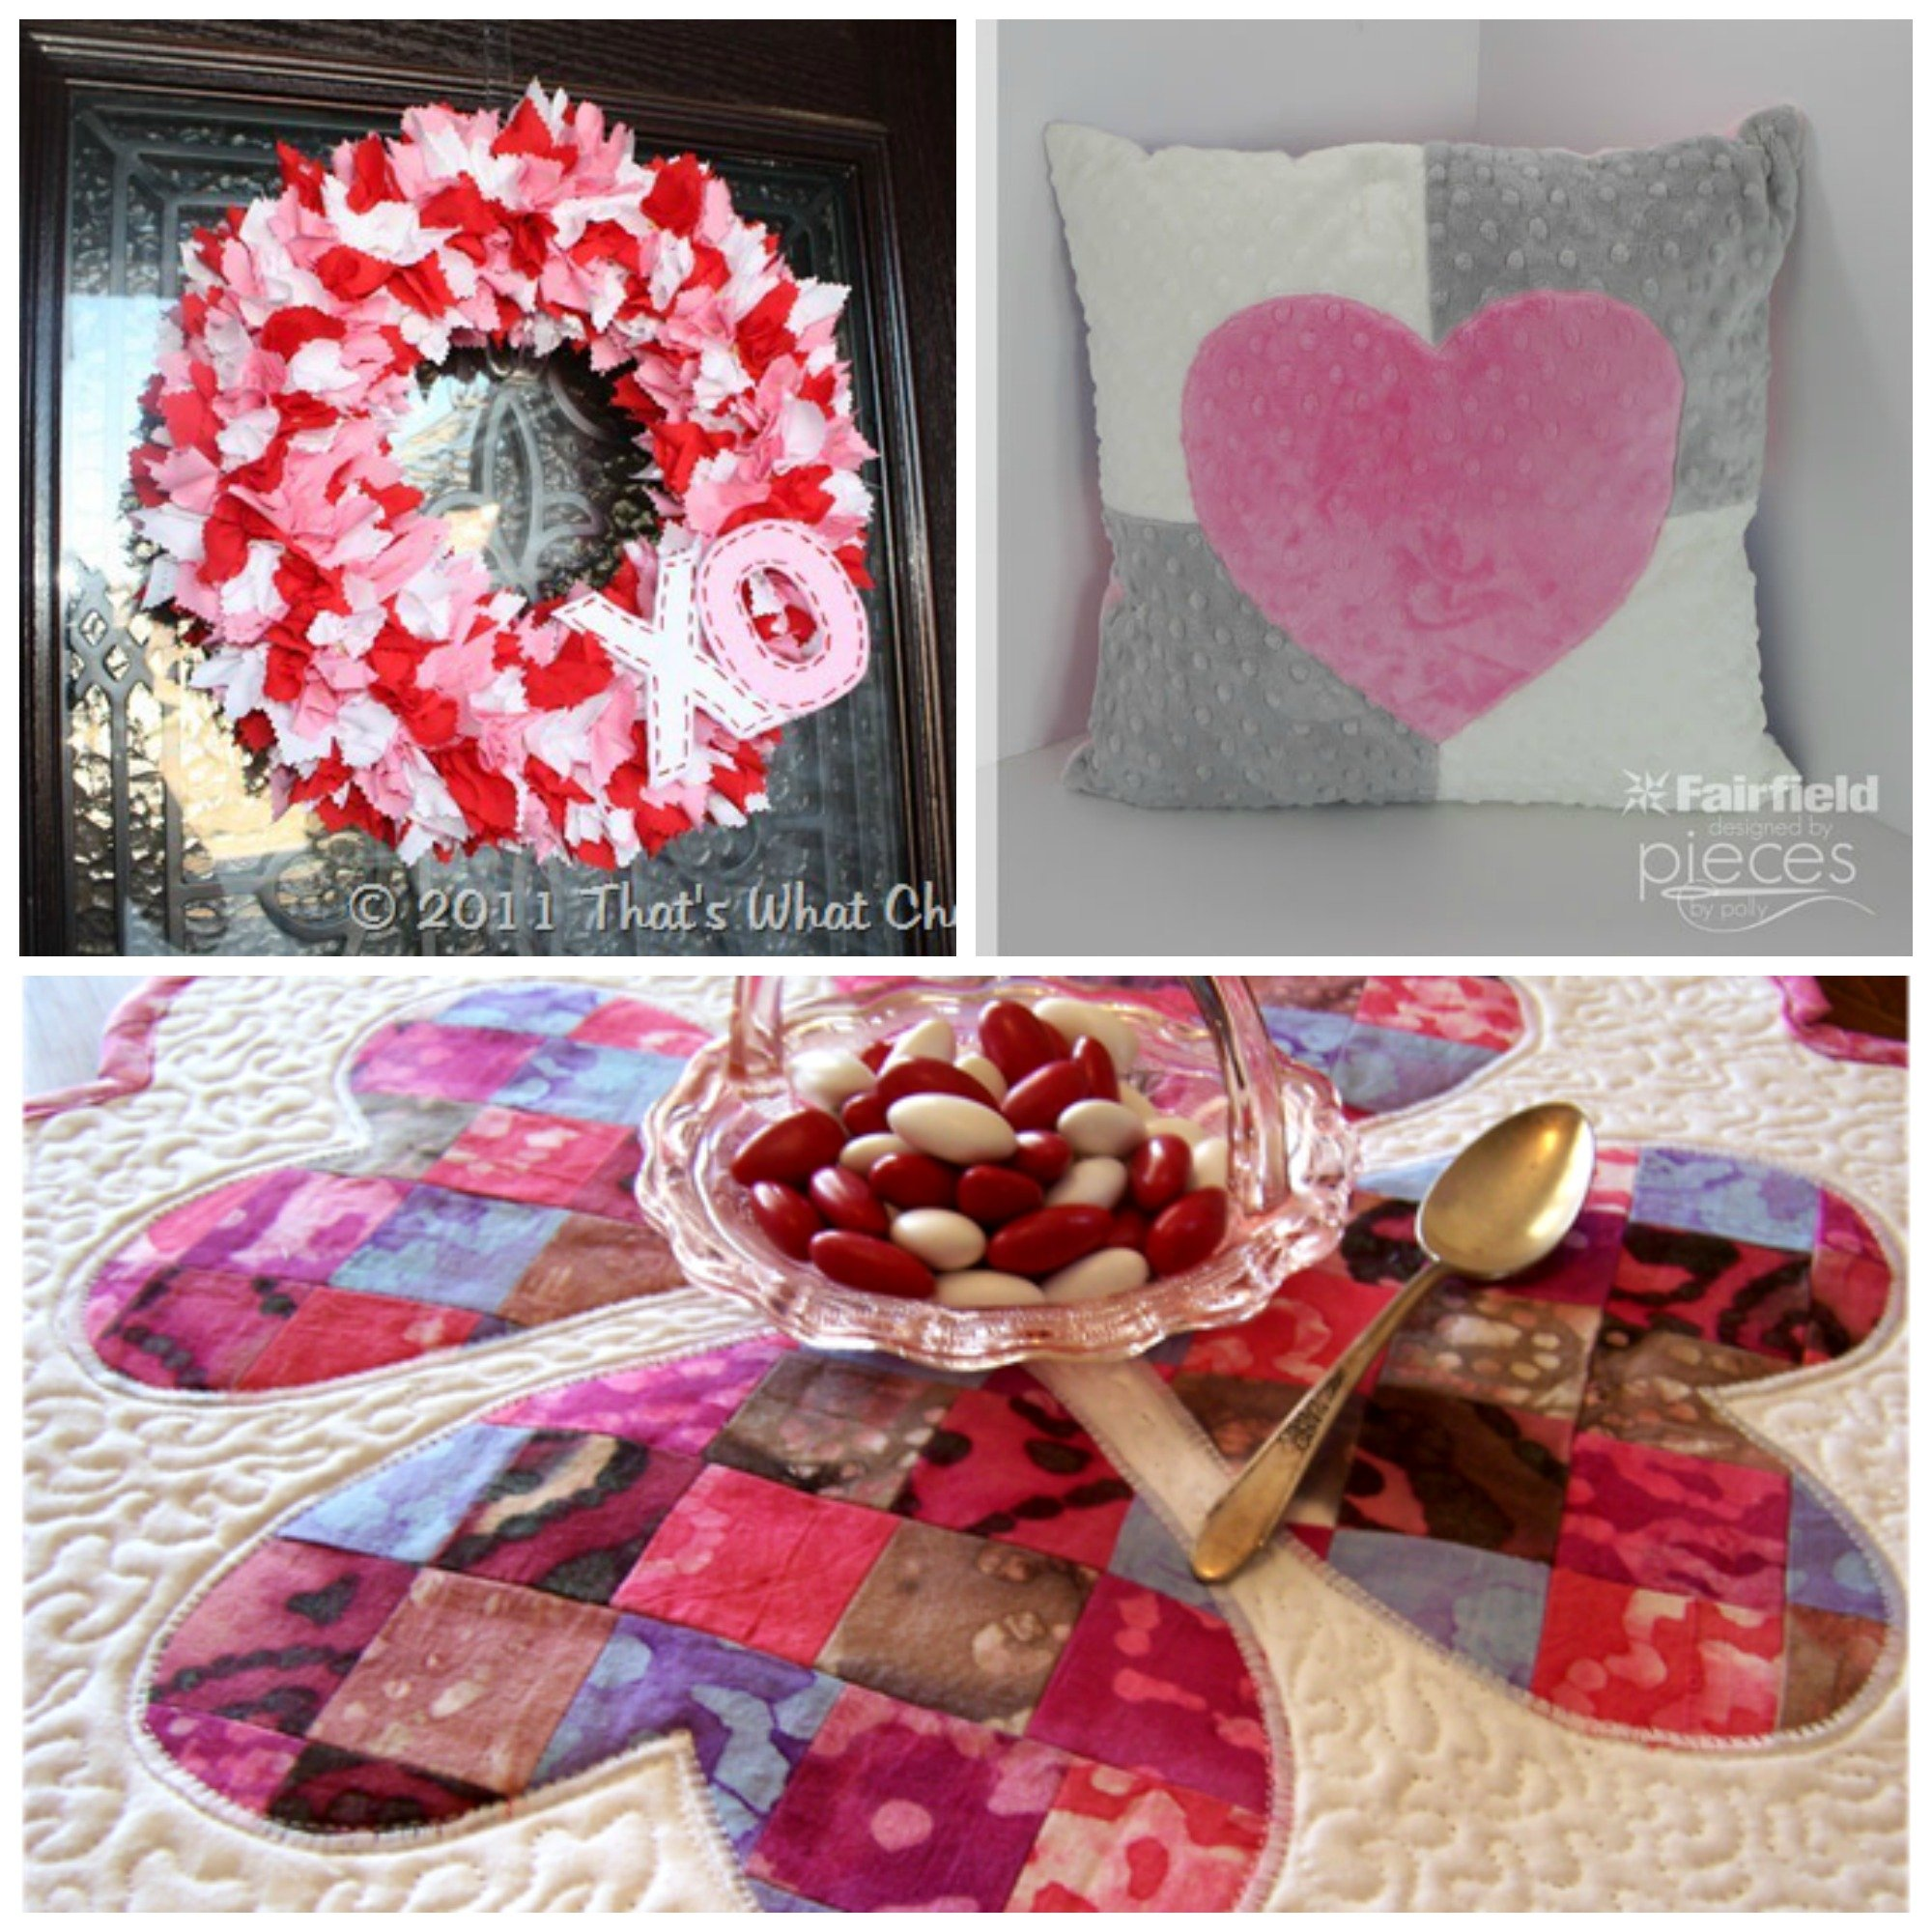 25 fabric valentine projects you can make fairfield world blog